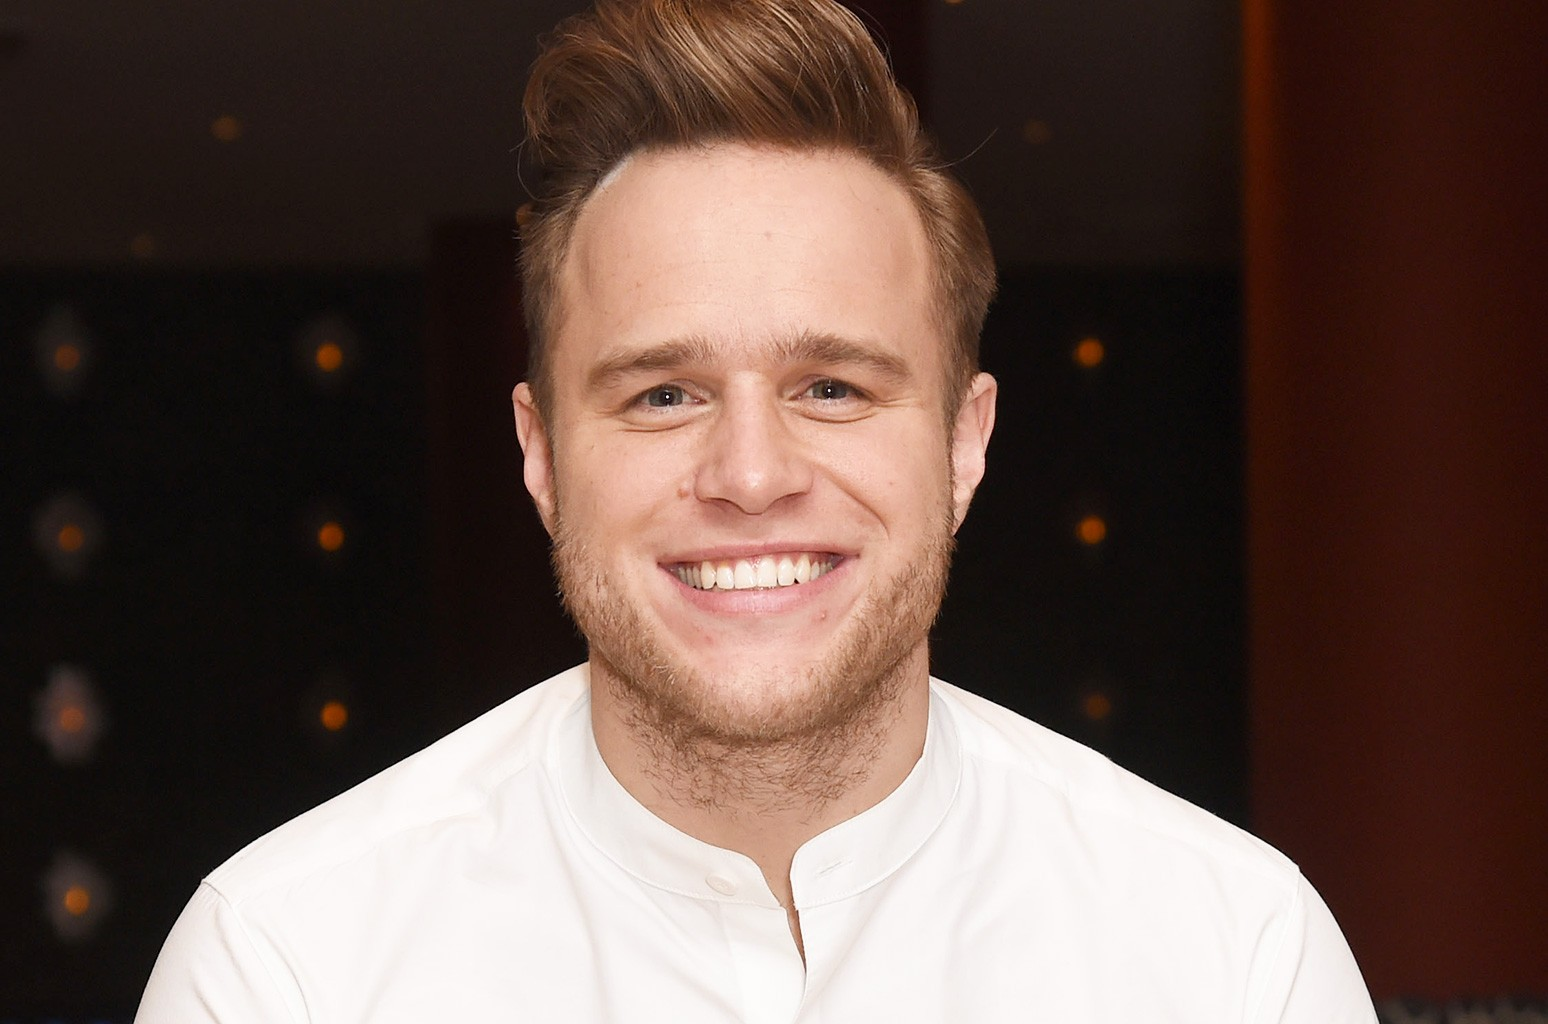 """Olly Murs attends the exclusive album playback of Olly Murs' new album """"24 HRS"""" at The Ham Yard Hotel on Oct. 20, 2016 in London, England."""